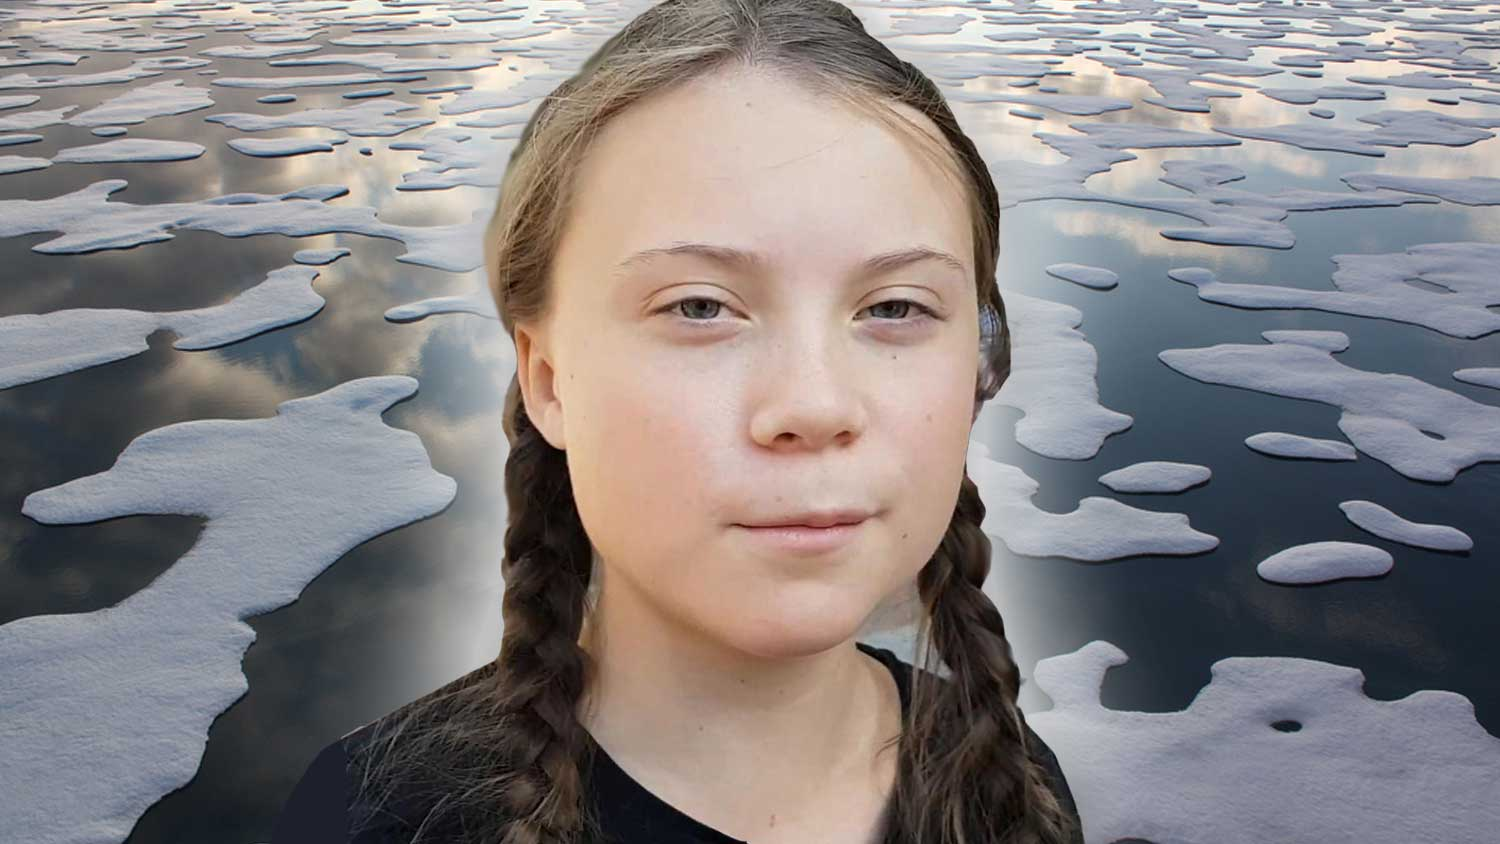 16-Year-Old Greta Thunberg Nominated for Nobel Prize